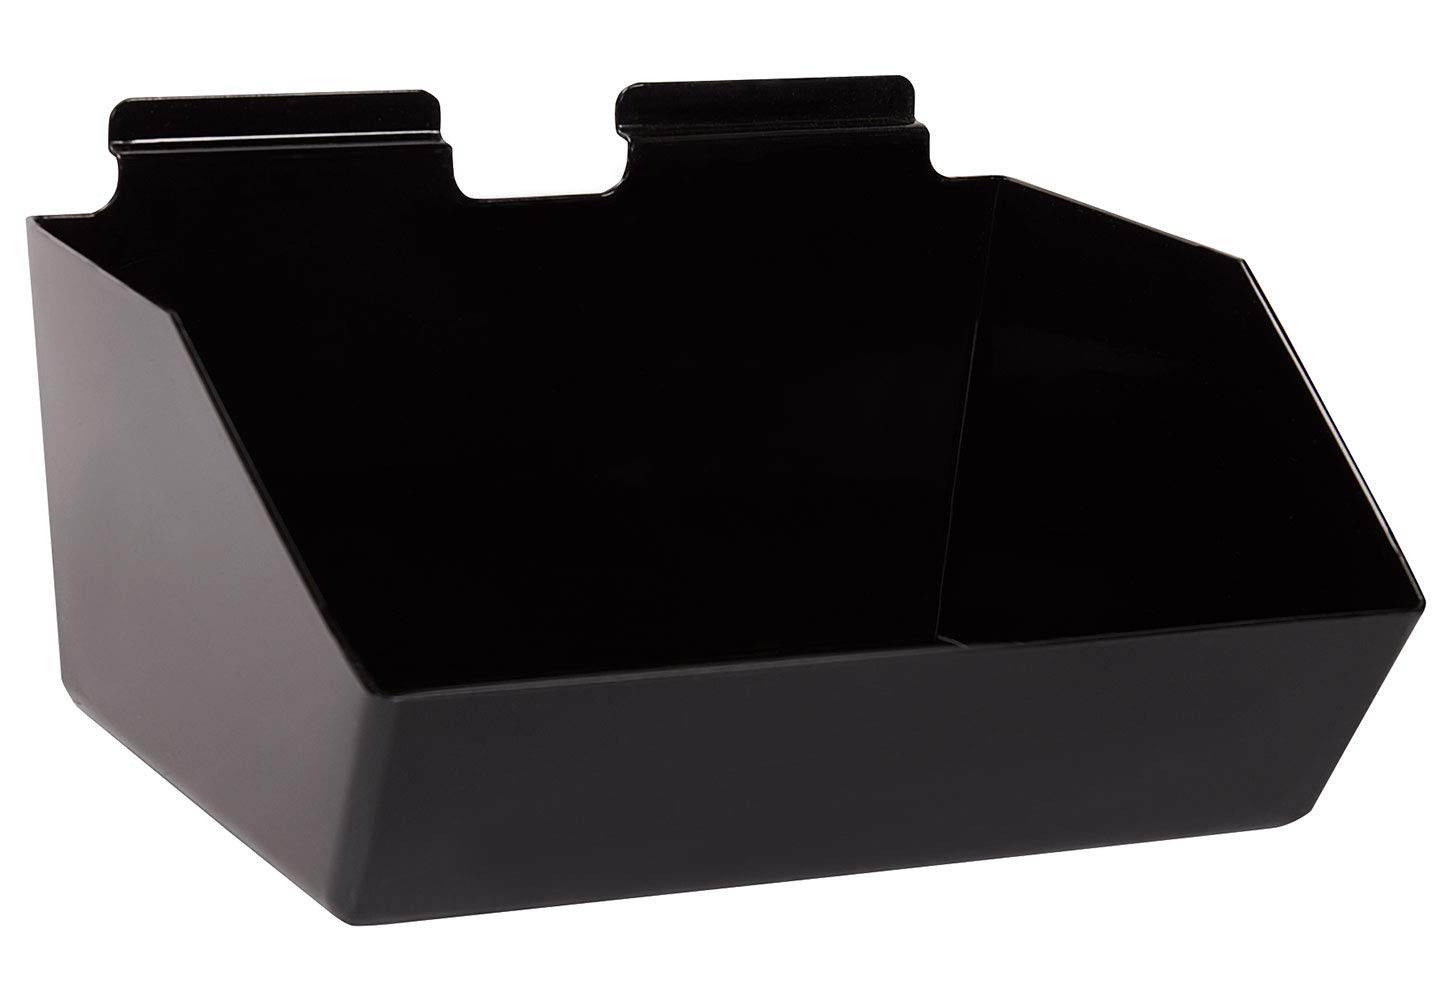 12 x 5 ½ 9 Spring new work one after another inch Black for Dump Plastic - Denver Mall Slatwall Bin